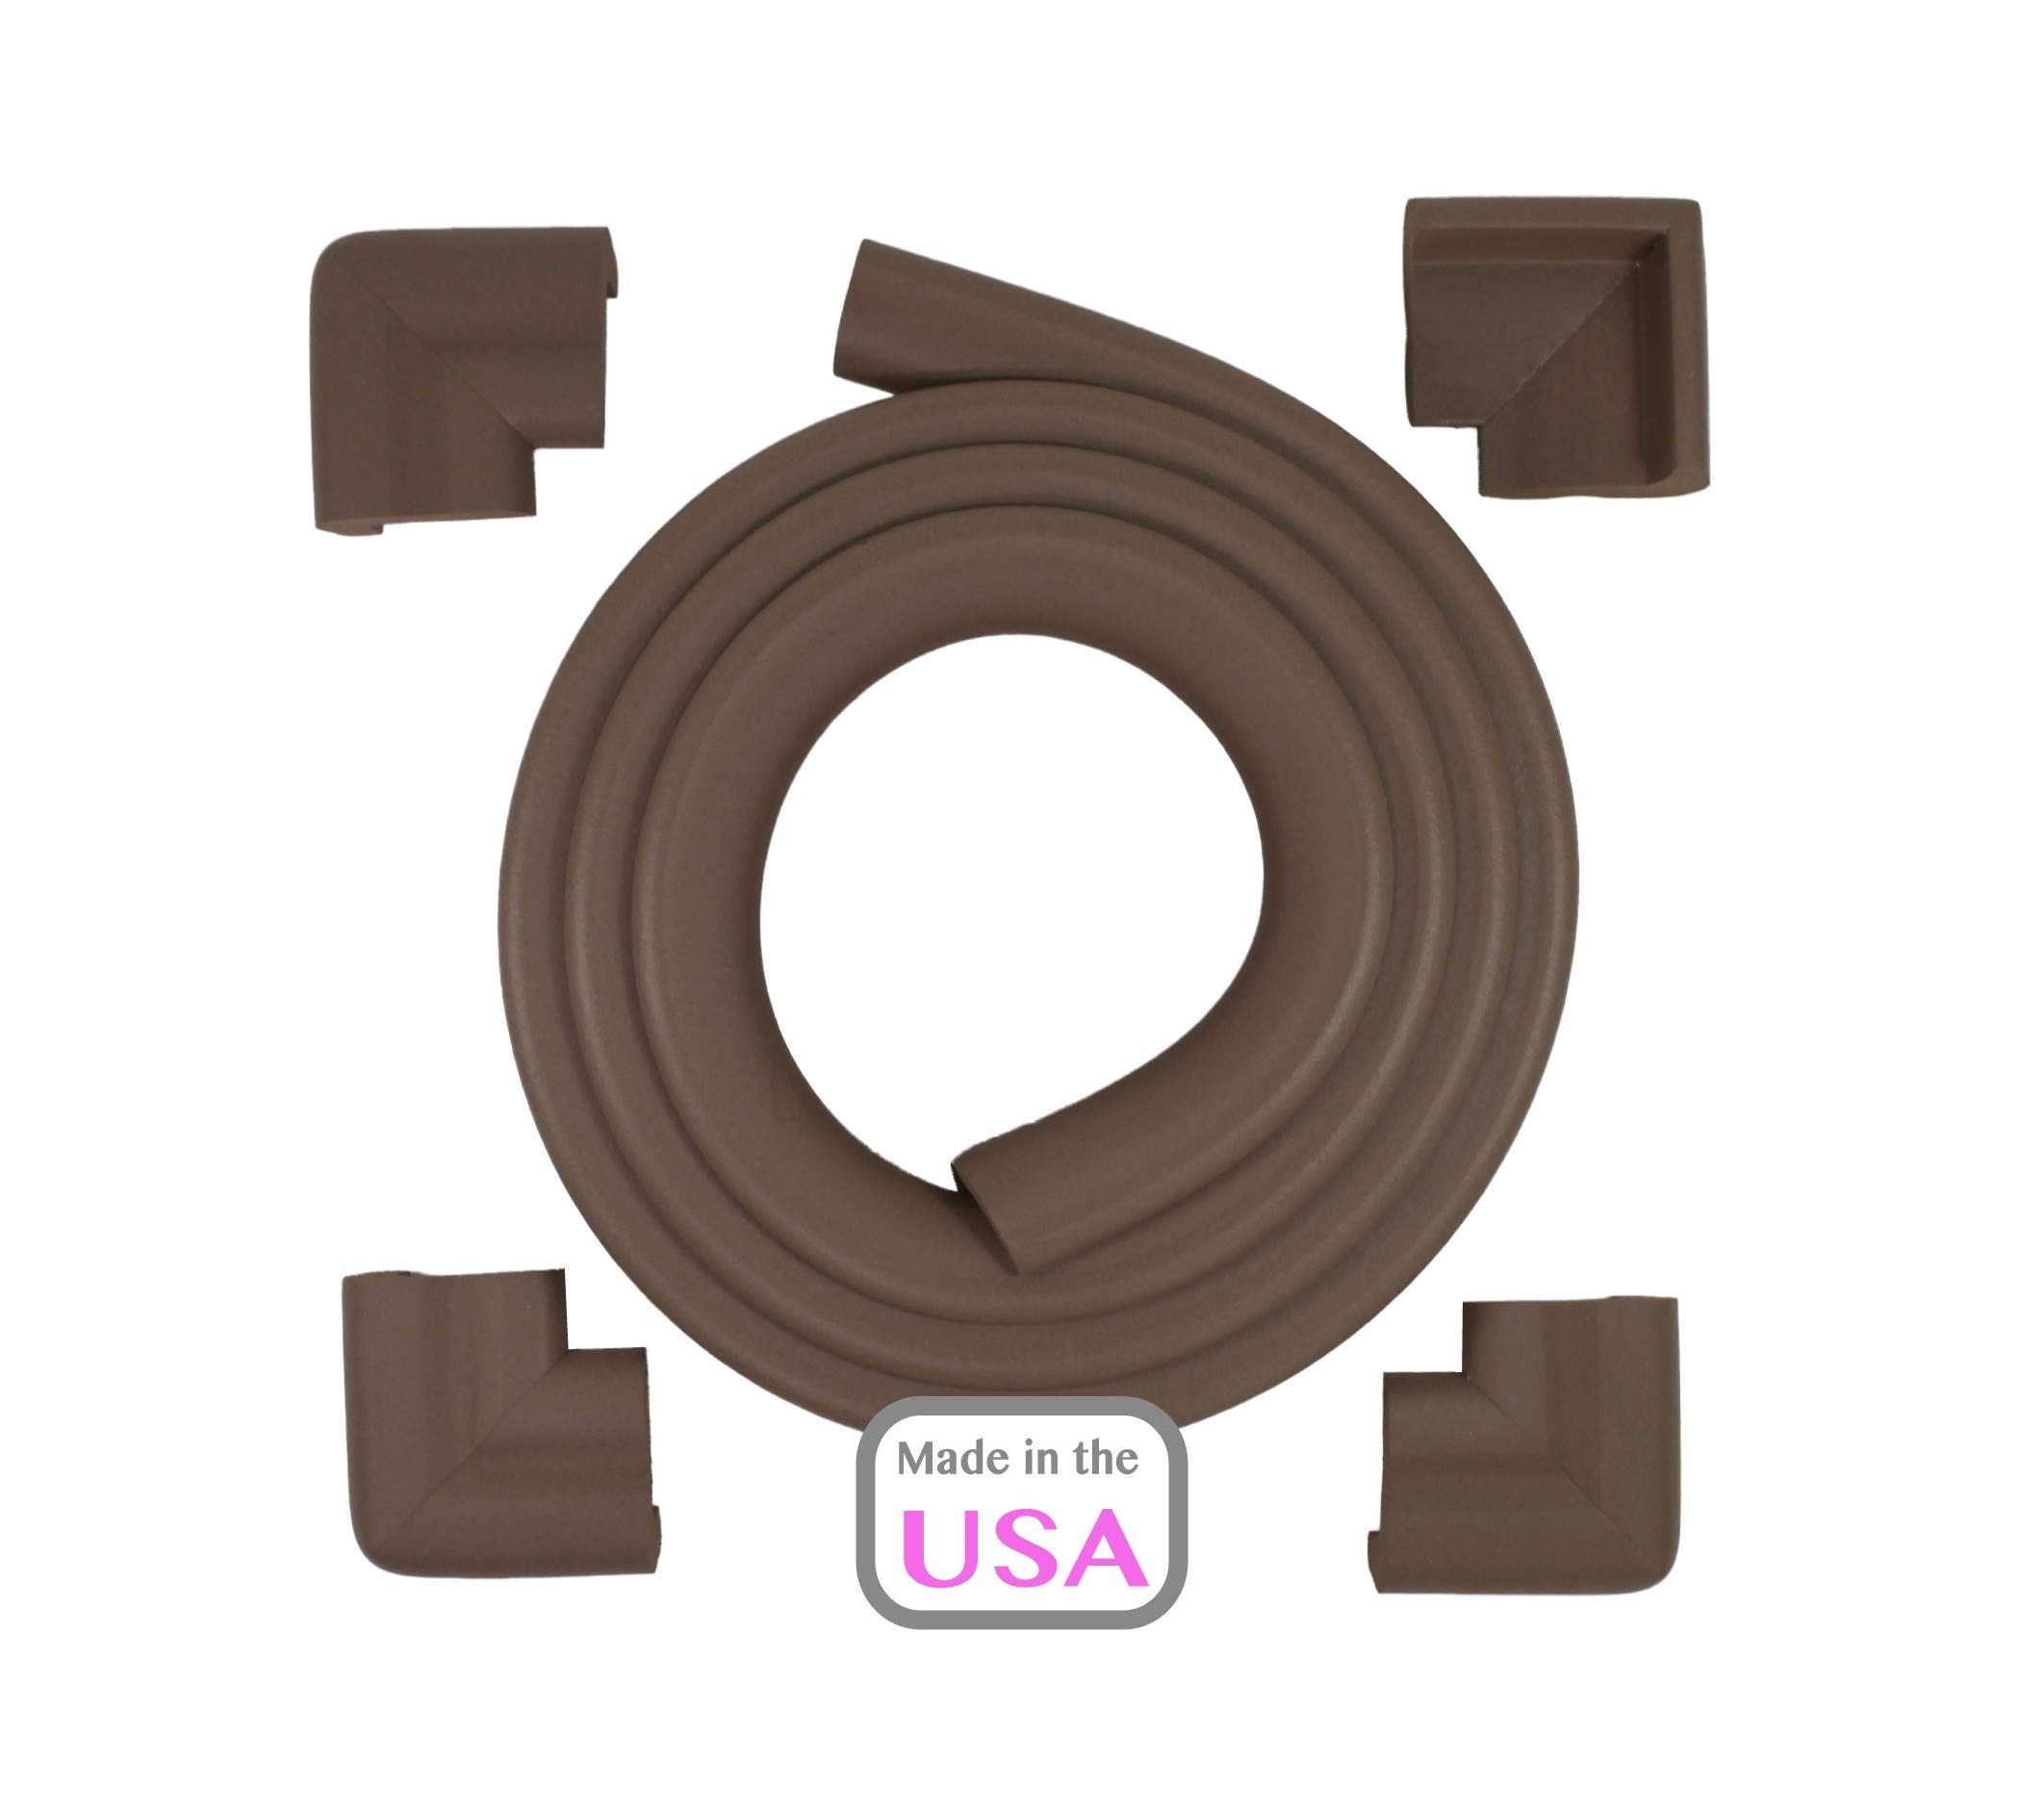 OOPSY Child Safety Jumbo Table Guard 12 Ft/ 4 Corners, Brown